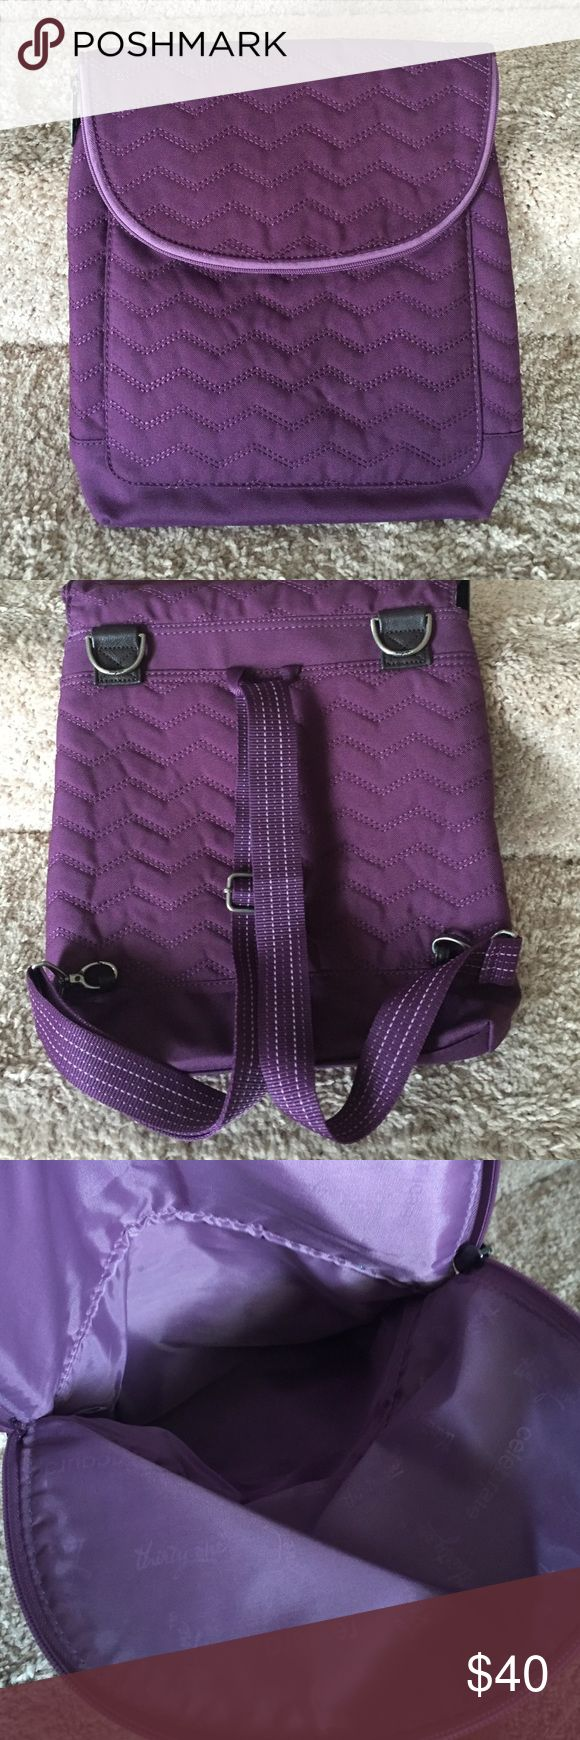 Thirty One Vary Backpack Purse Convertible bag that can be worn four ways. Strap adjusts to allow styles for purse, crossbody or two backpack variations. Lots of pockets and storage options. Only used once. Thirty One Bags